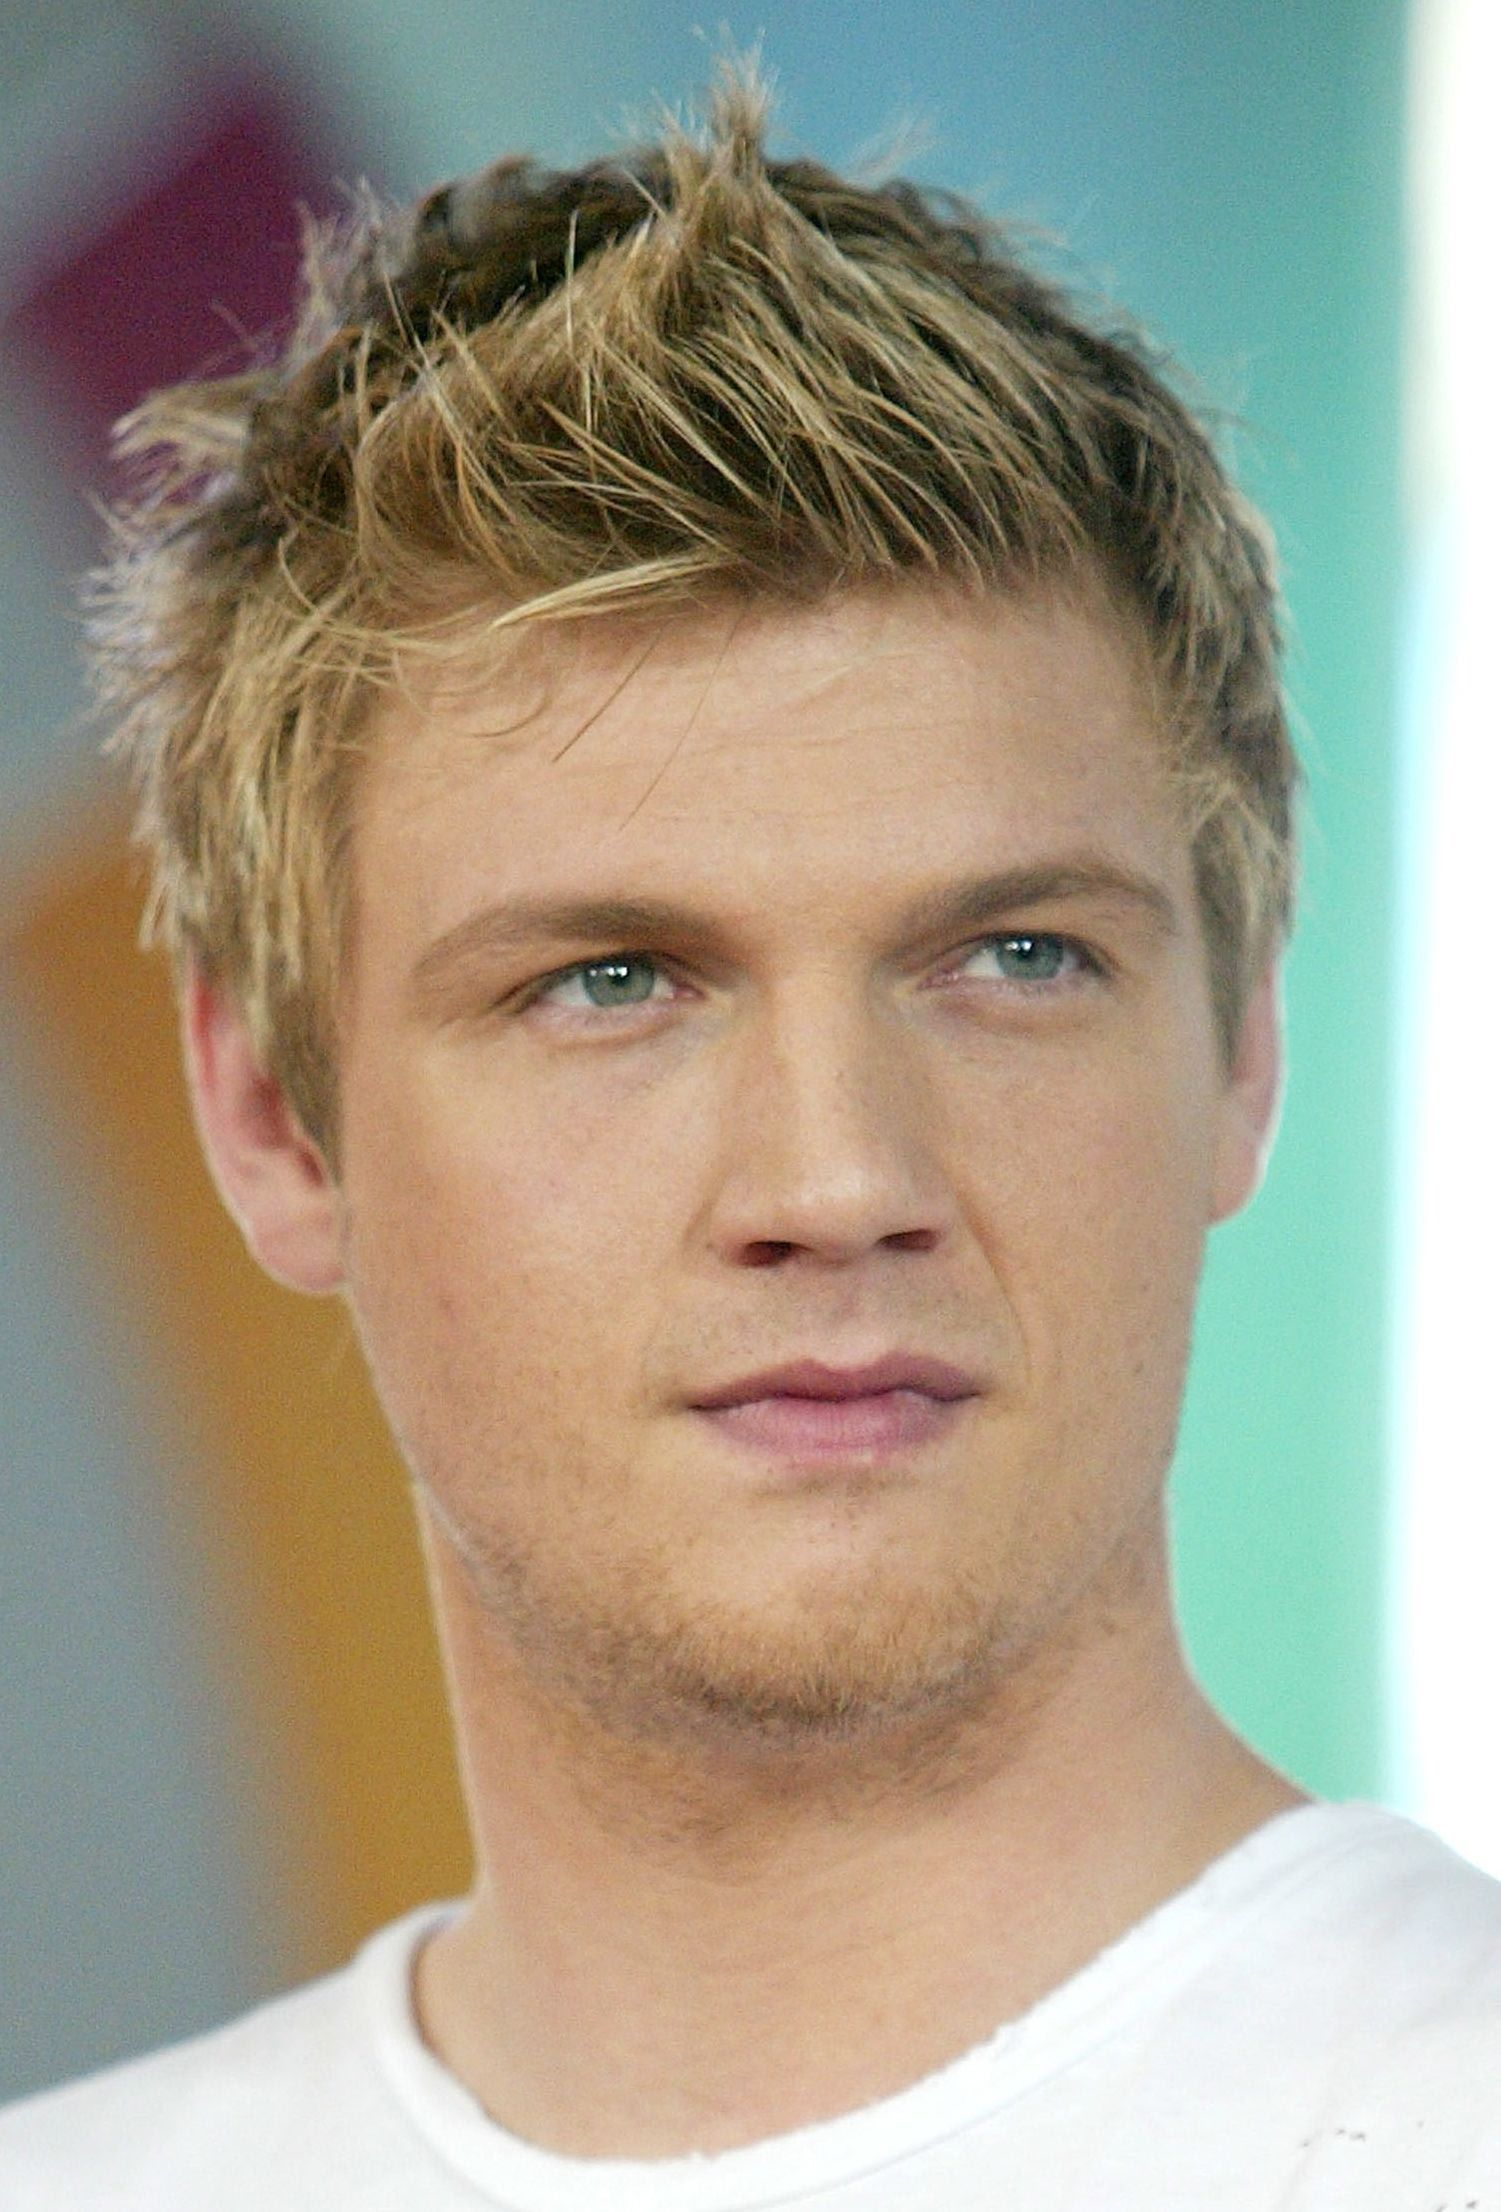 check out 25 best short spiky haircuts for guys. so who think short